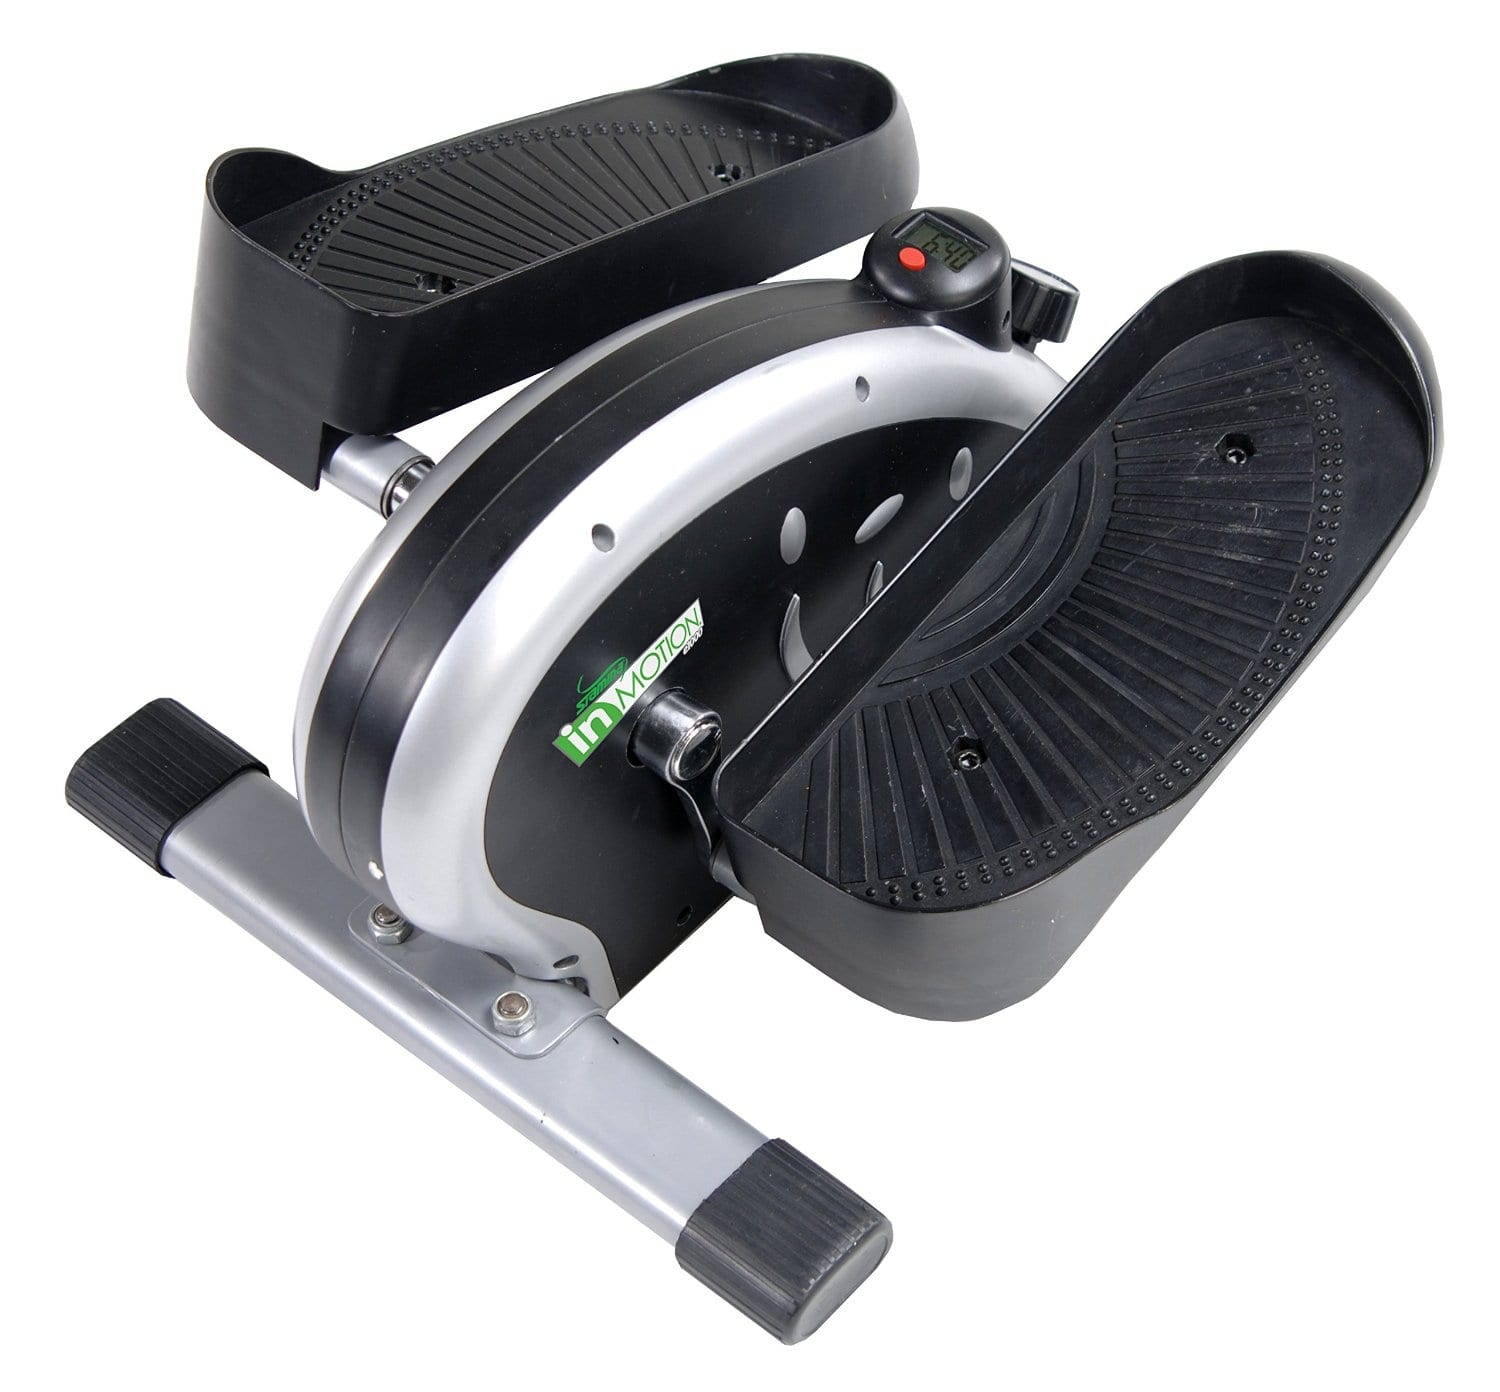 Itu0027s A Small Gym Equipment That Can Be Placed Anywhere In Your Home Or  Office And Can Be Used Anytime You Feel Like Exercising. Just Put It Out,  ...